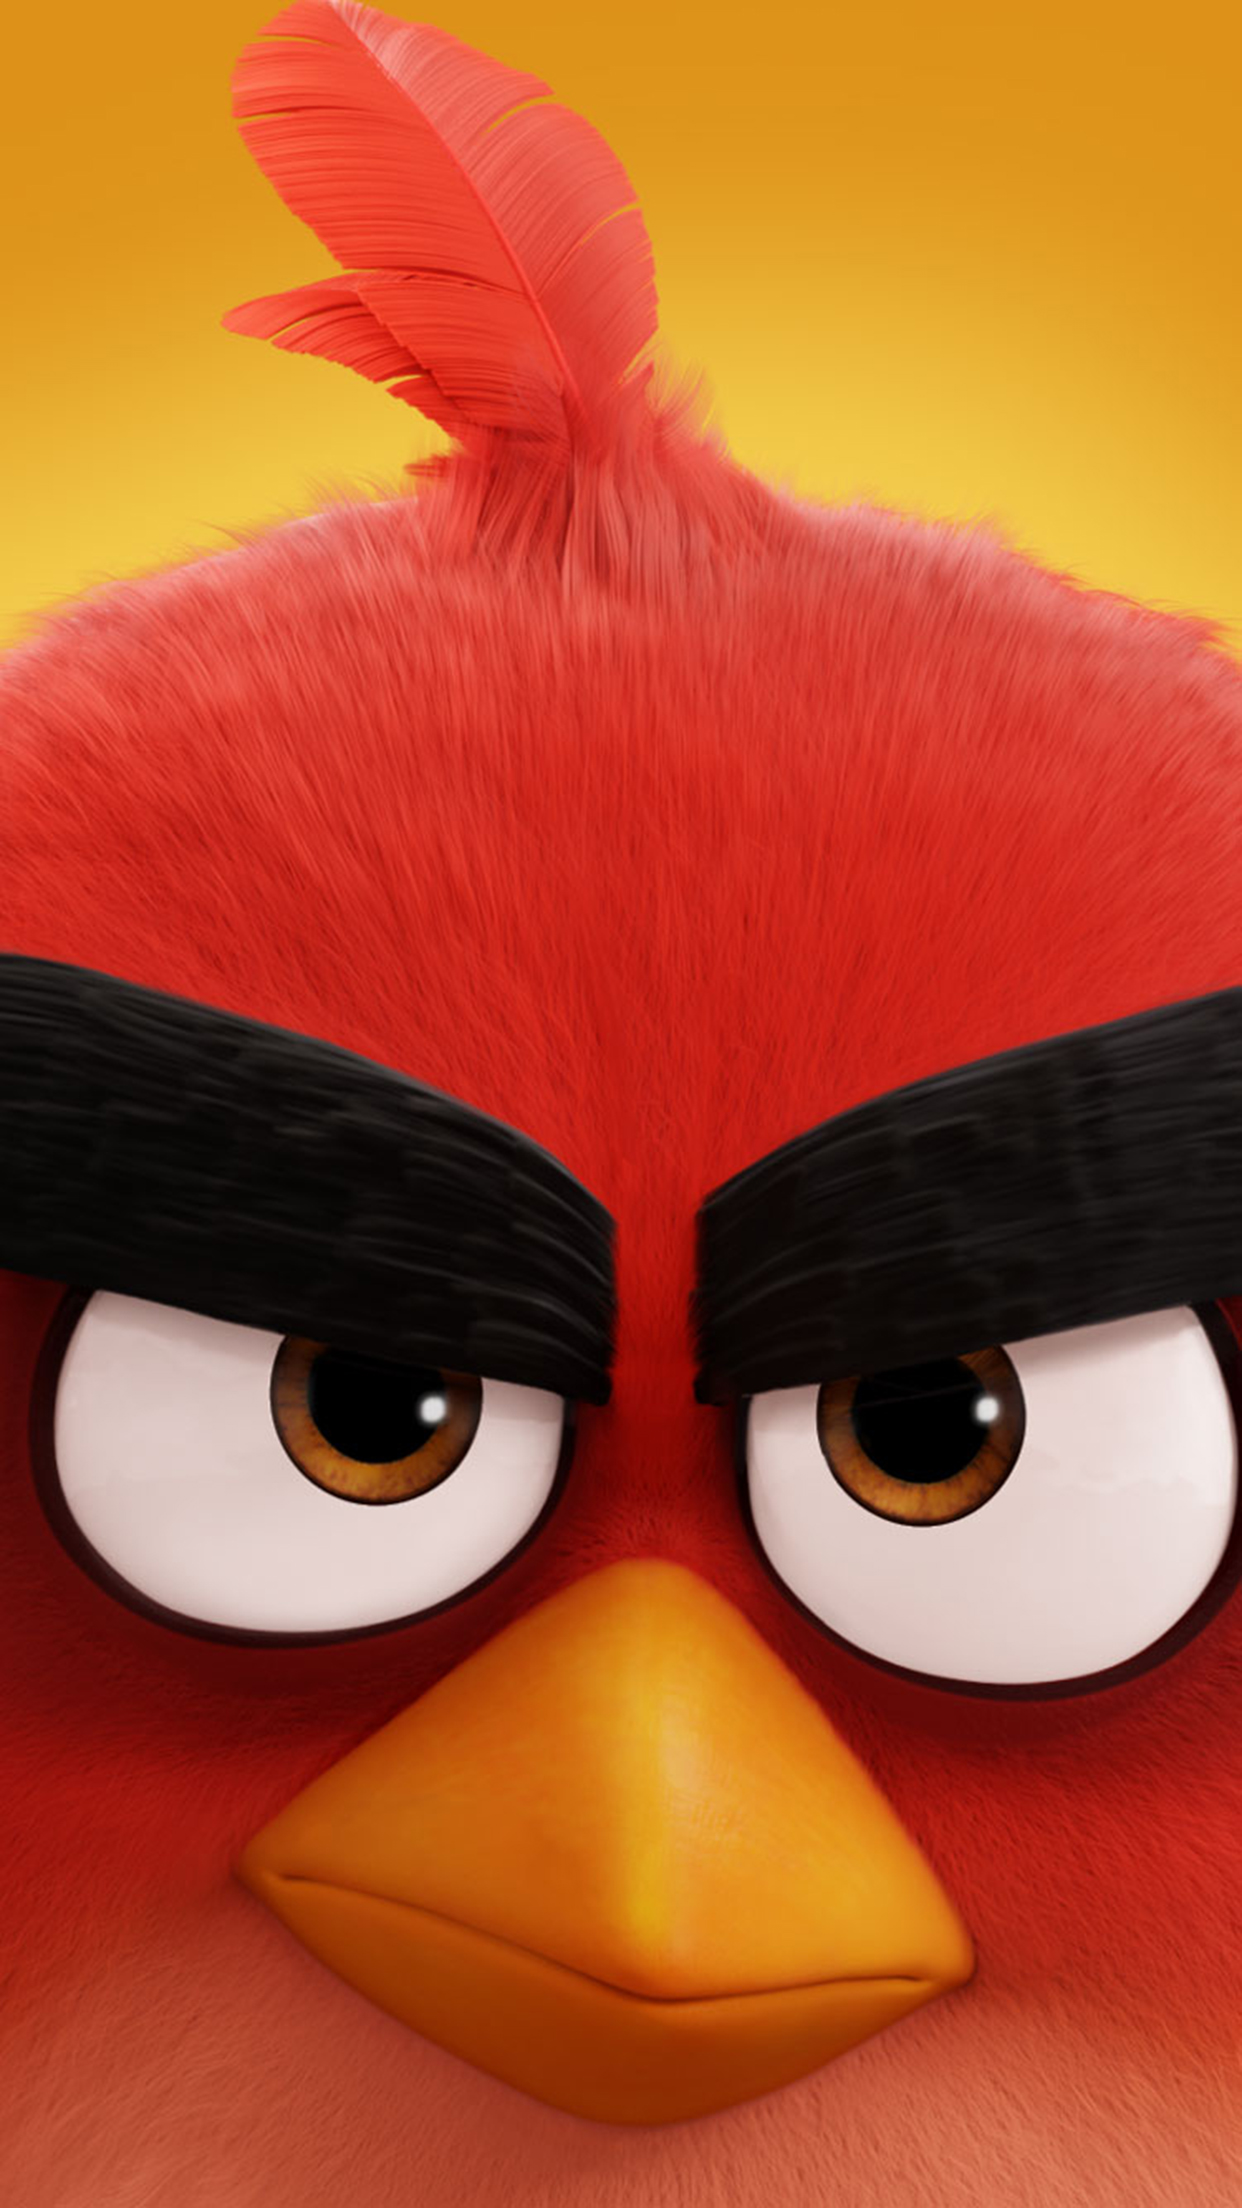 Angry Bird Red 3Wallpapers iPhone Parallax Angry Bird Red